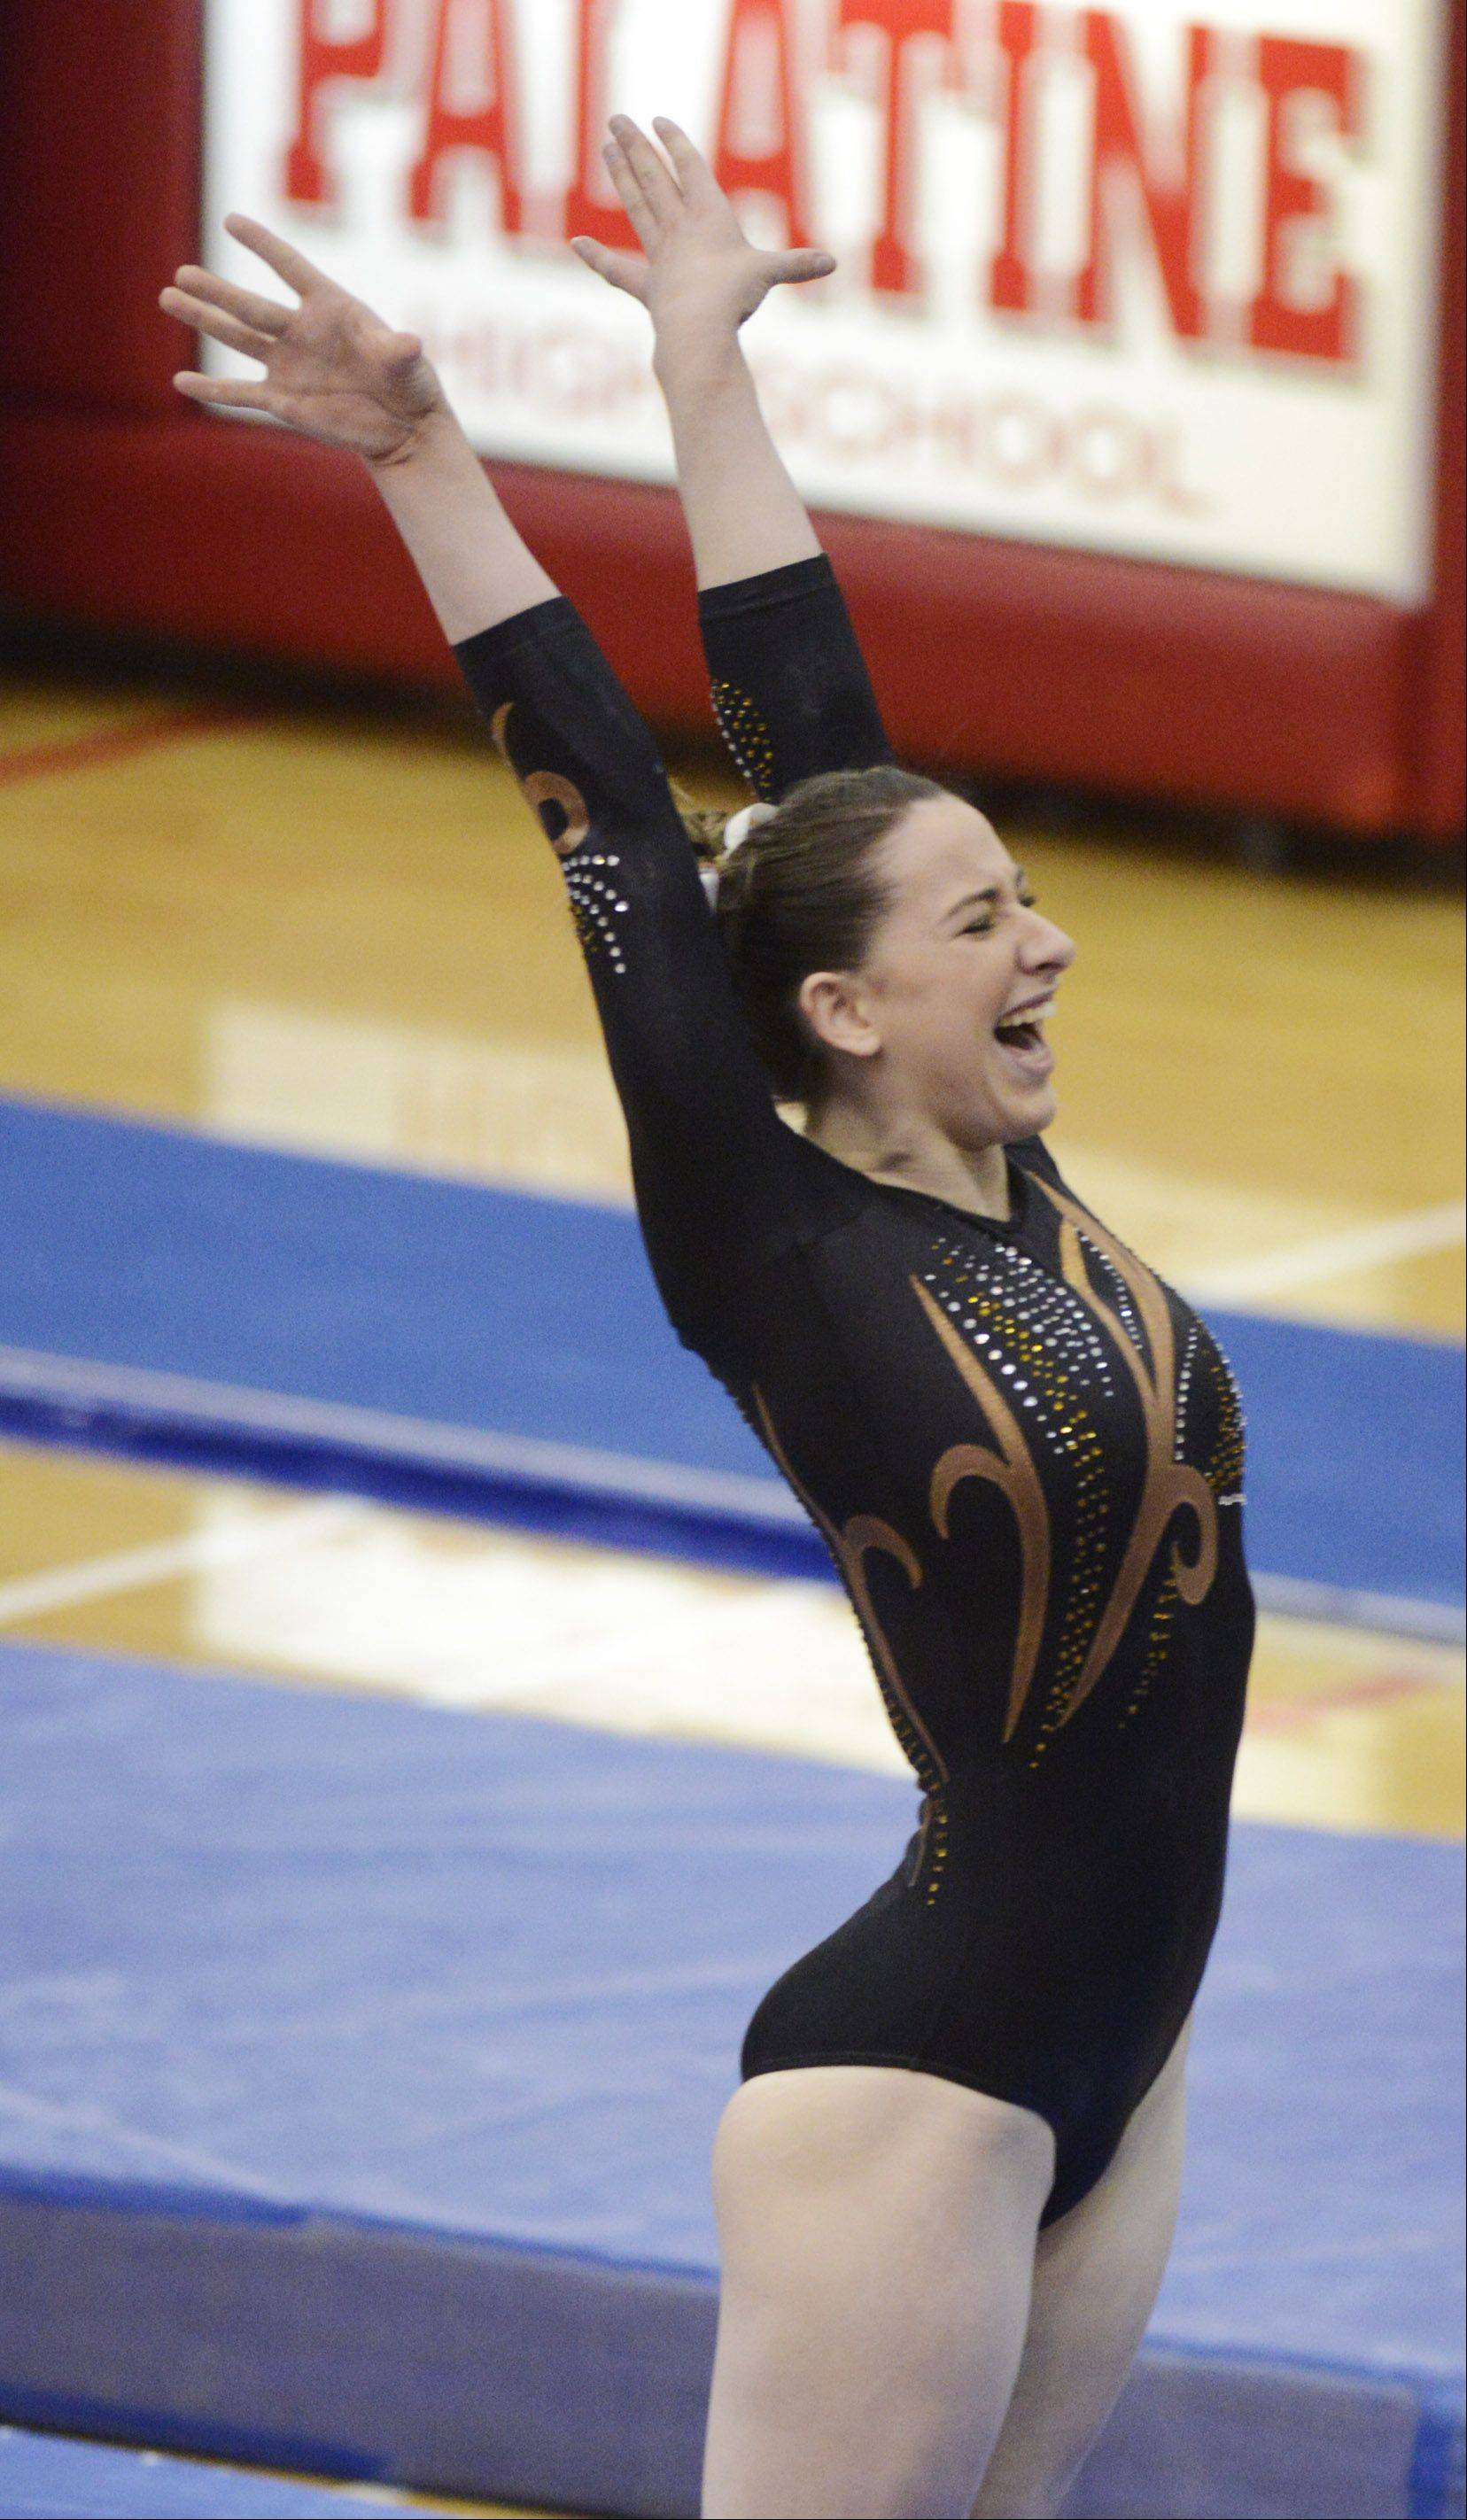 Carmel's Lauren Feely celebrates her performance on the balance beam during the girls state gymnastics preliminaries in Palatine Friday.